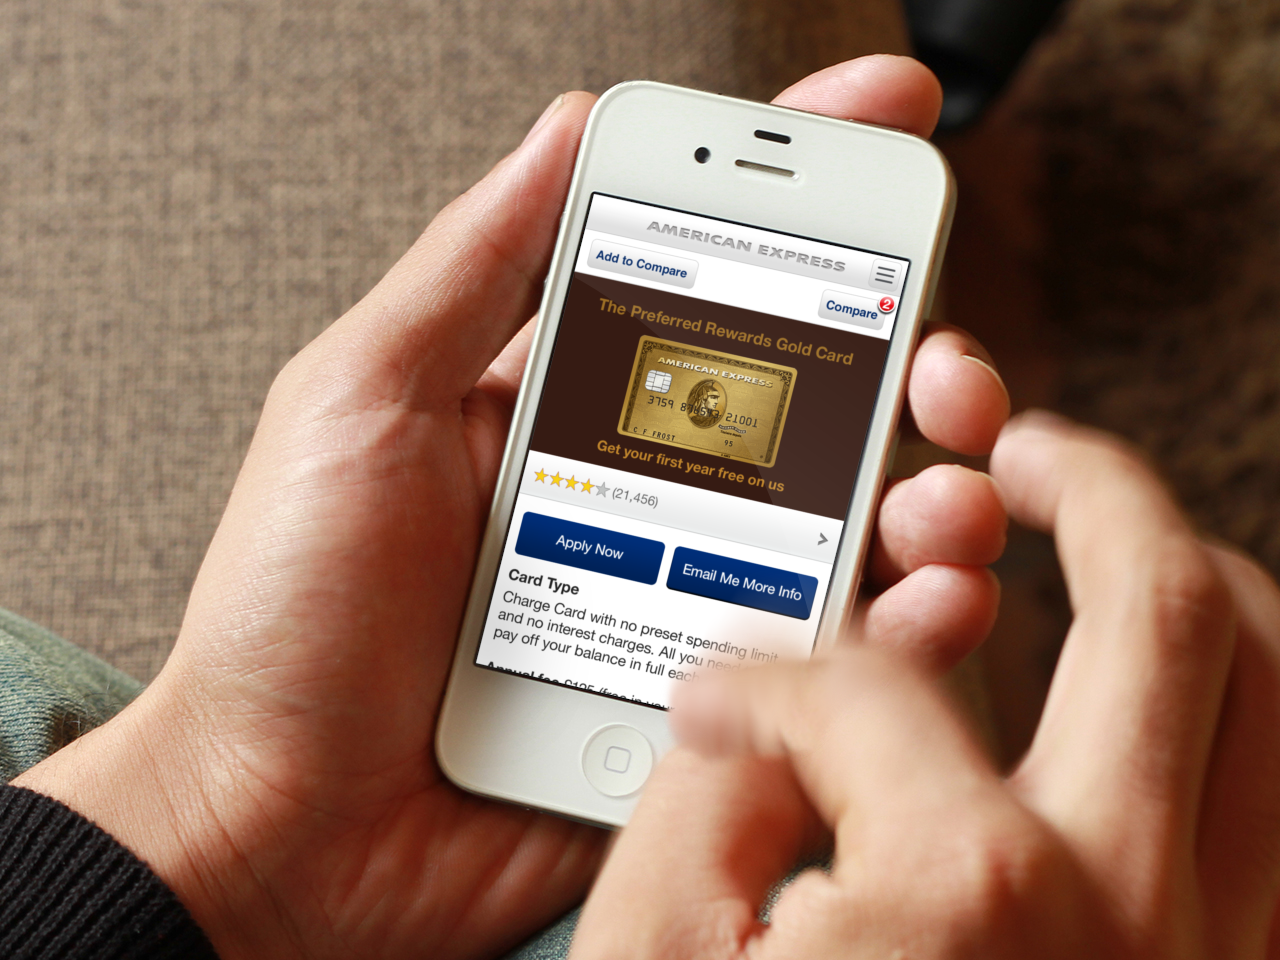 The American Express mobile prospect journey enables potential customers to learn about cards and apply from a mobile device.